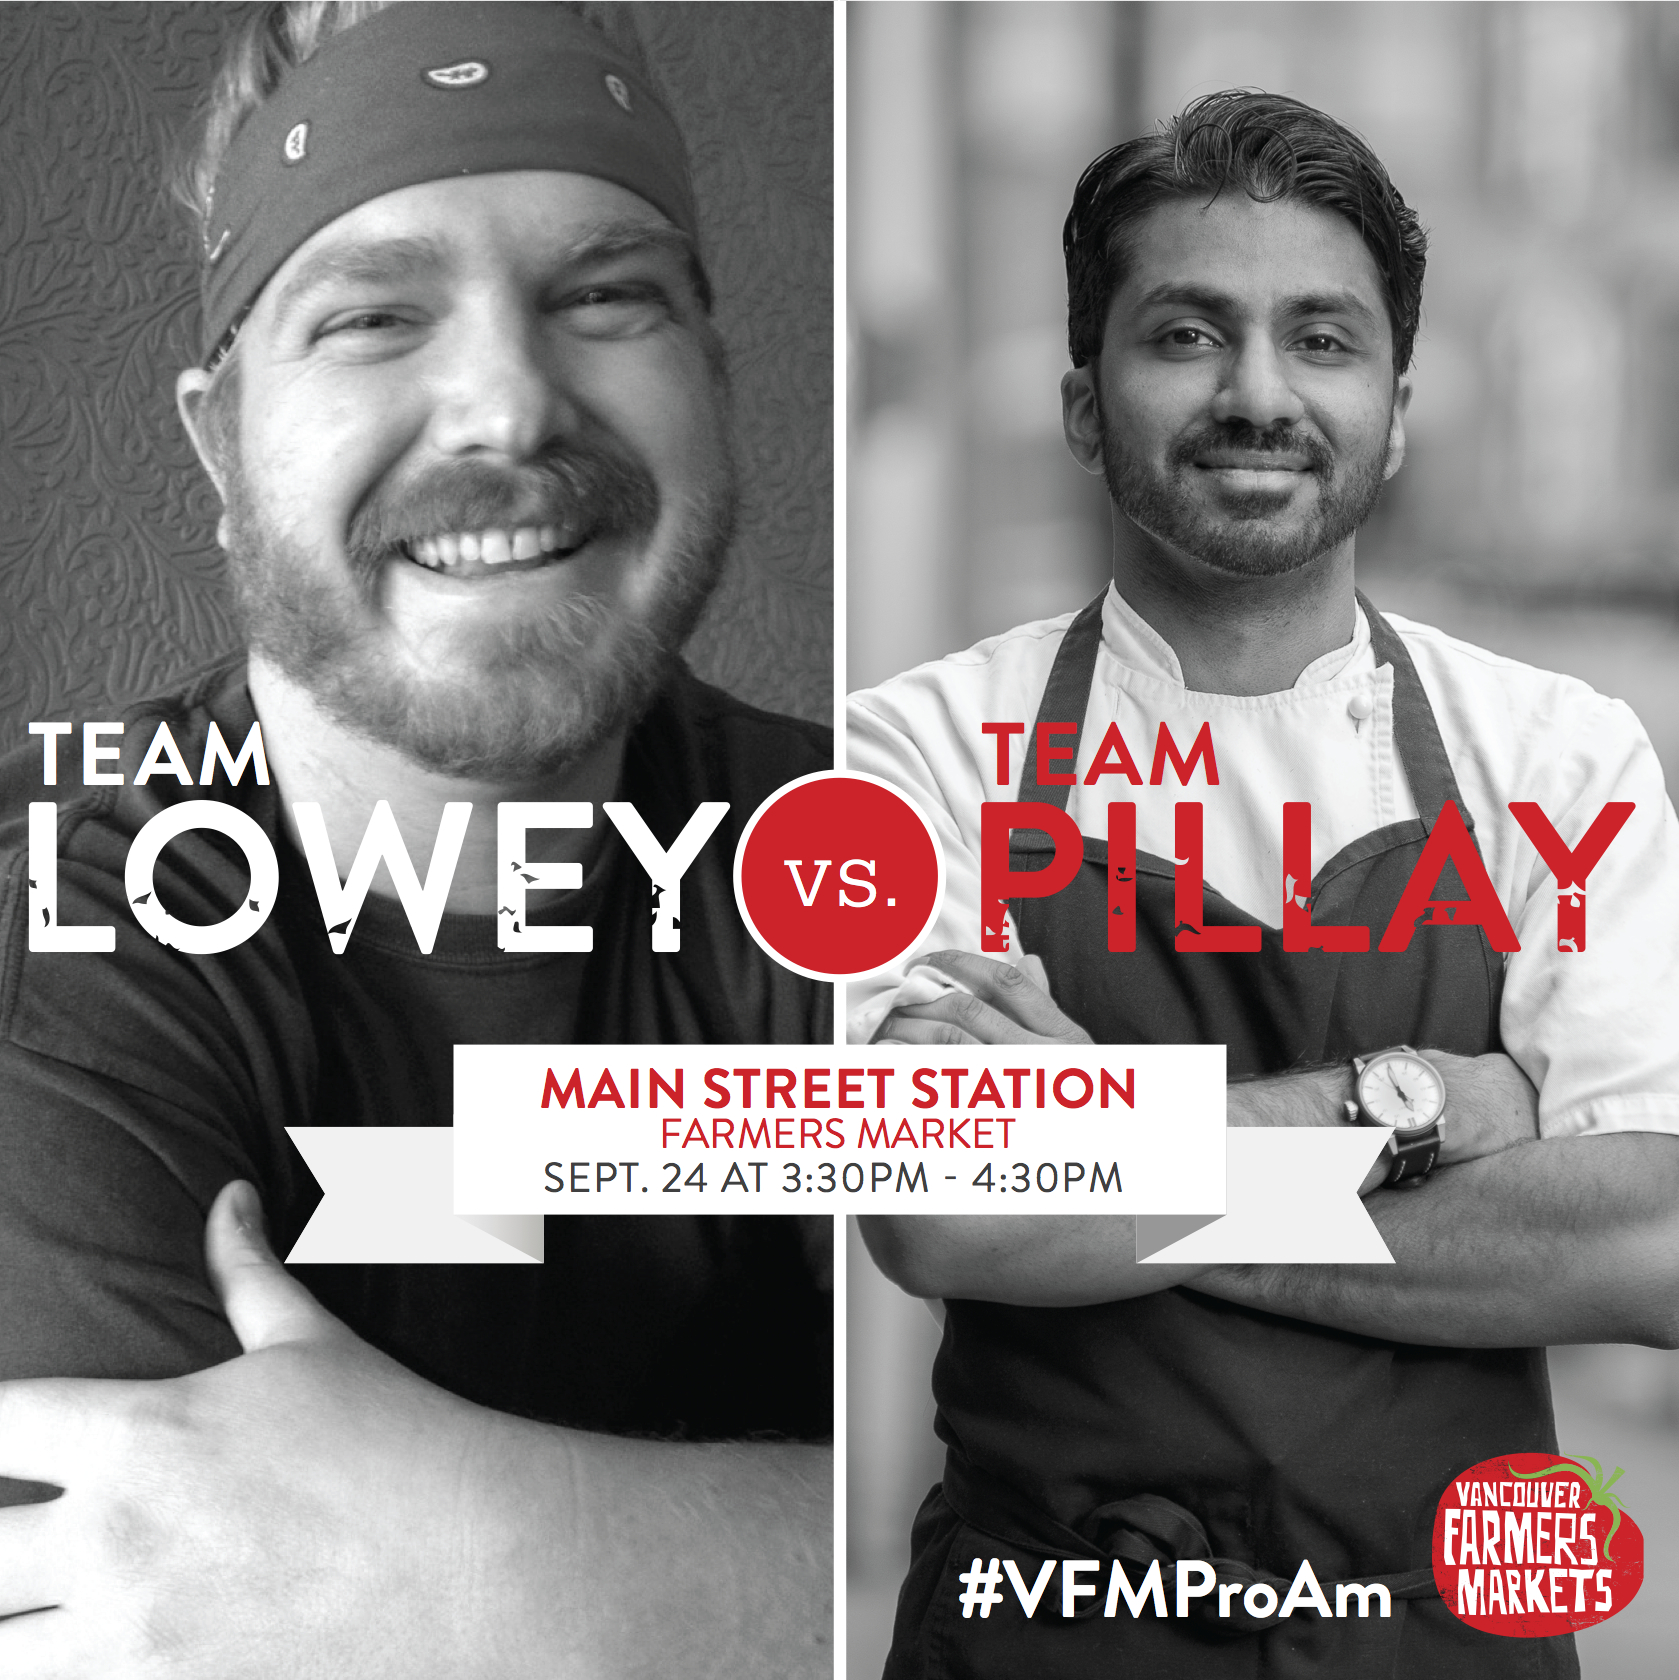 Chef vs. Chef Digital Asset Square